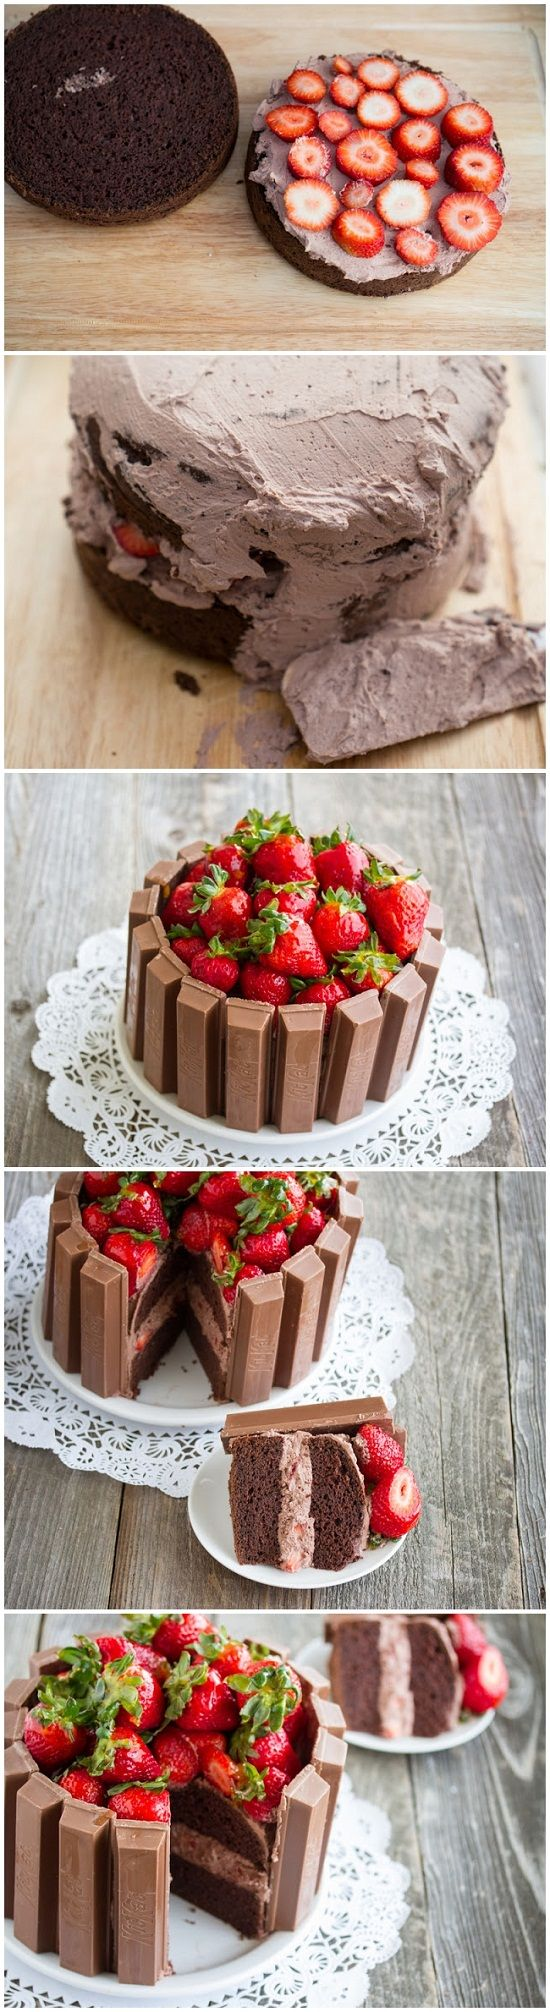 Strawberry Chocolate Kit Kat Cake